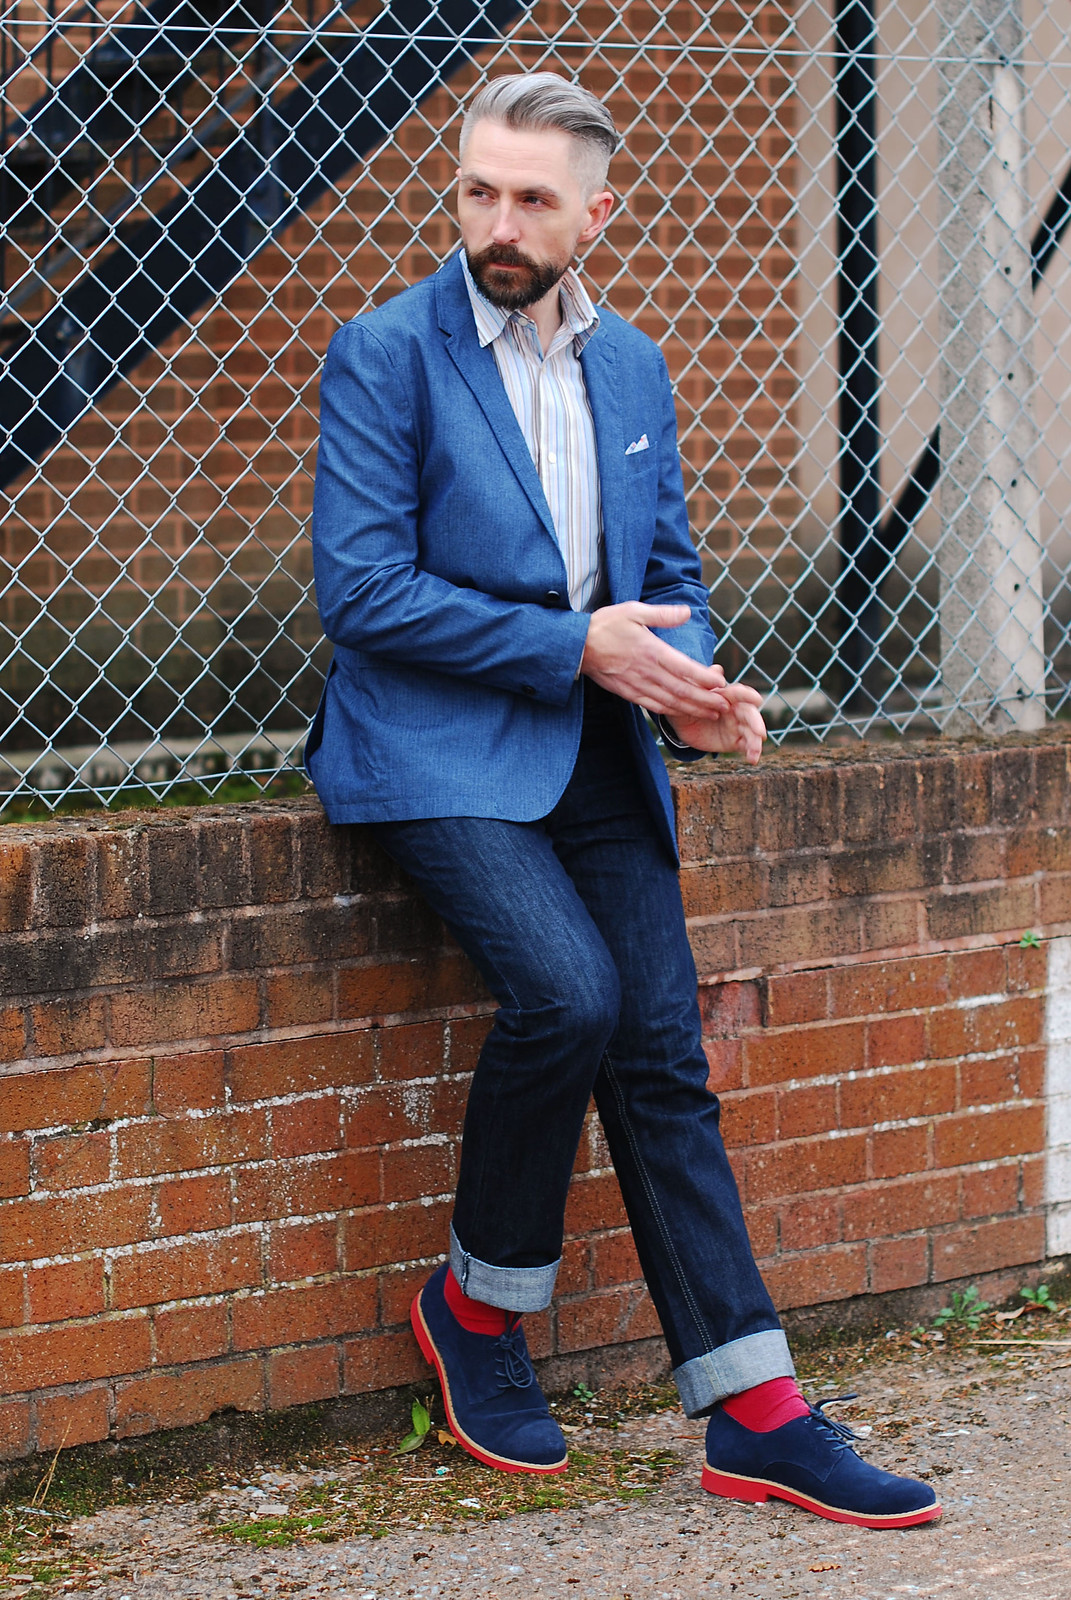 Relaunched: The Husband's Over 40 Menswear Blog #SaturdayShareLinkUp